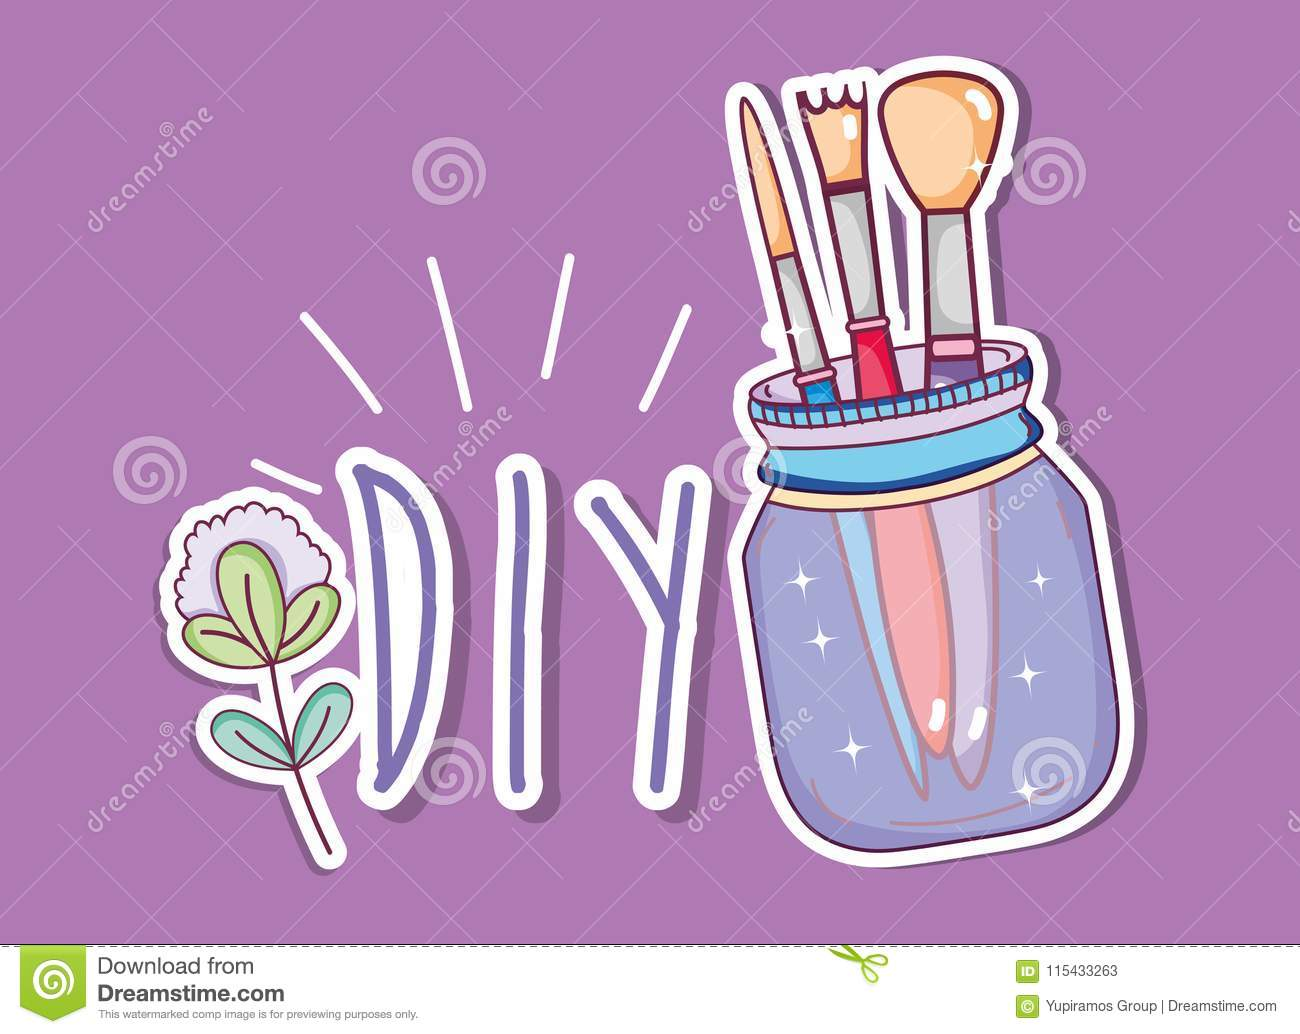 Do it yourself crafts concept stock vector illustration of summer download do it yourself crafts concept stock vector illustration of summer jars 115433263 solutioingenieria Choice Image